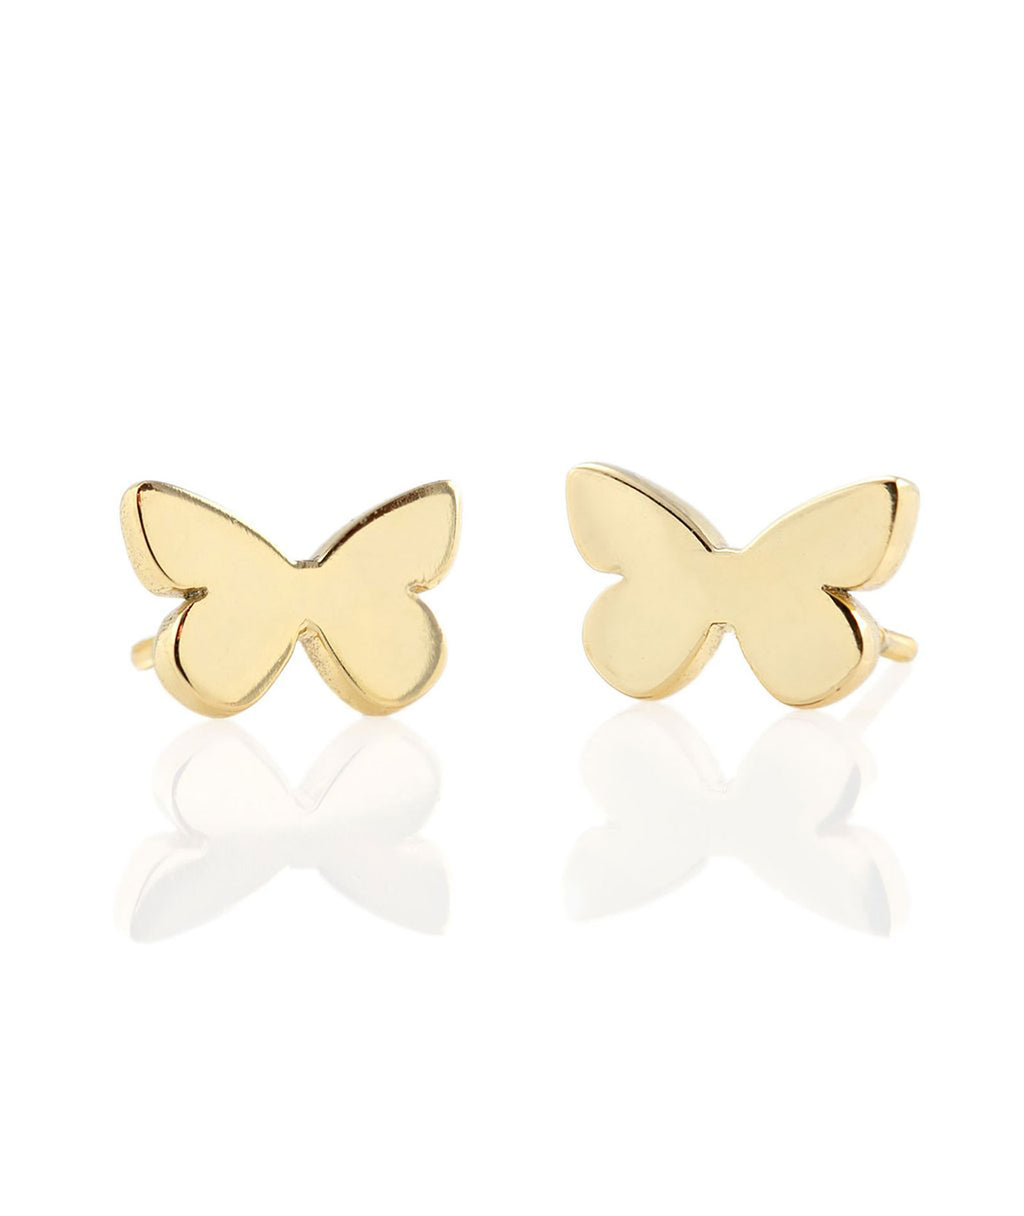 Kris Nations Earrings Butterfly Gold